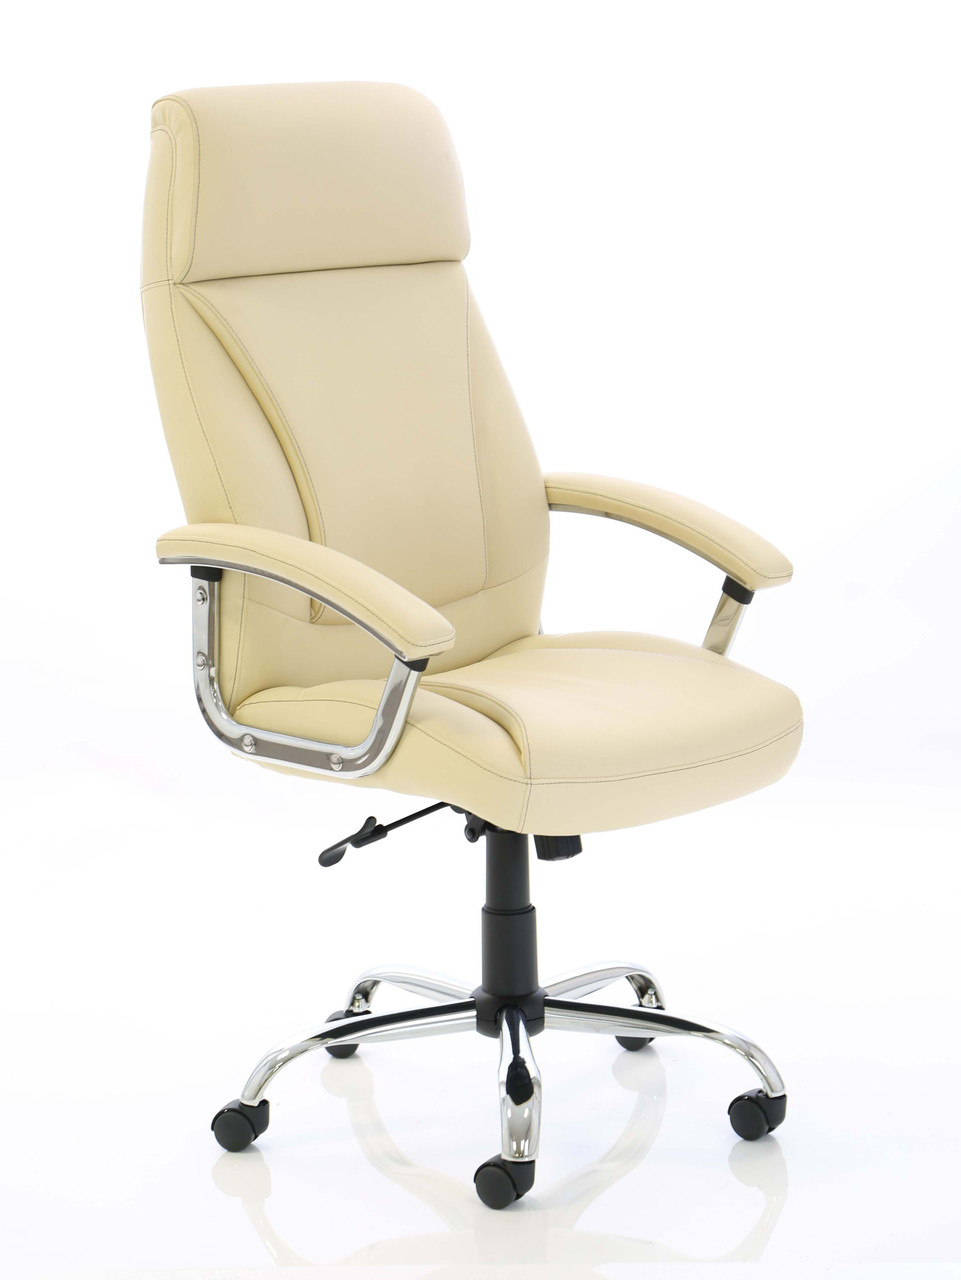 Penza - Executive Cream Leather Chair